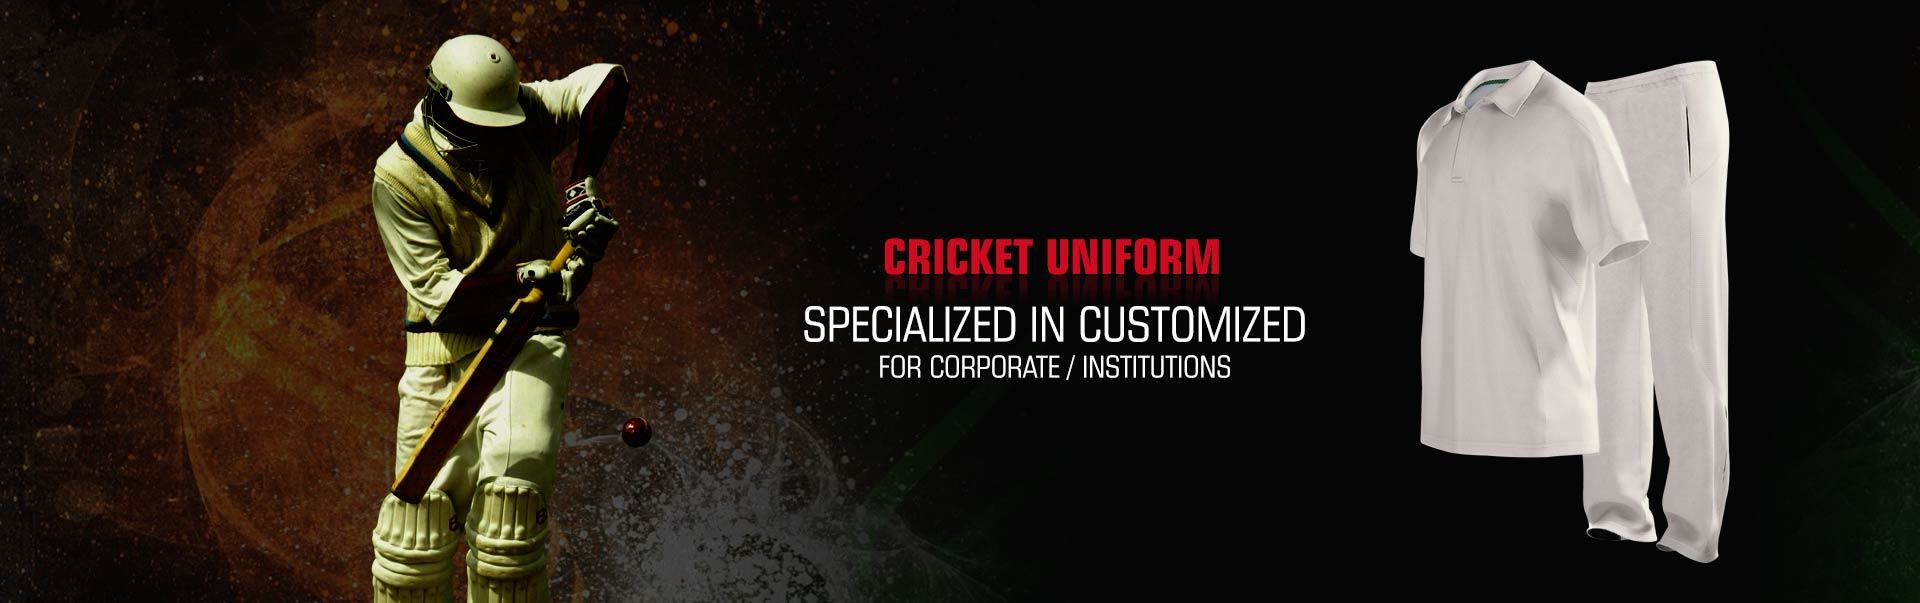 Cricket Uniform Wholesaler, Suppliers in Oxford